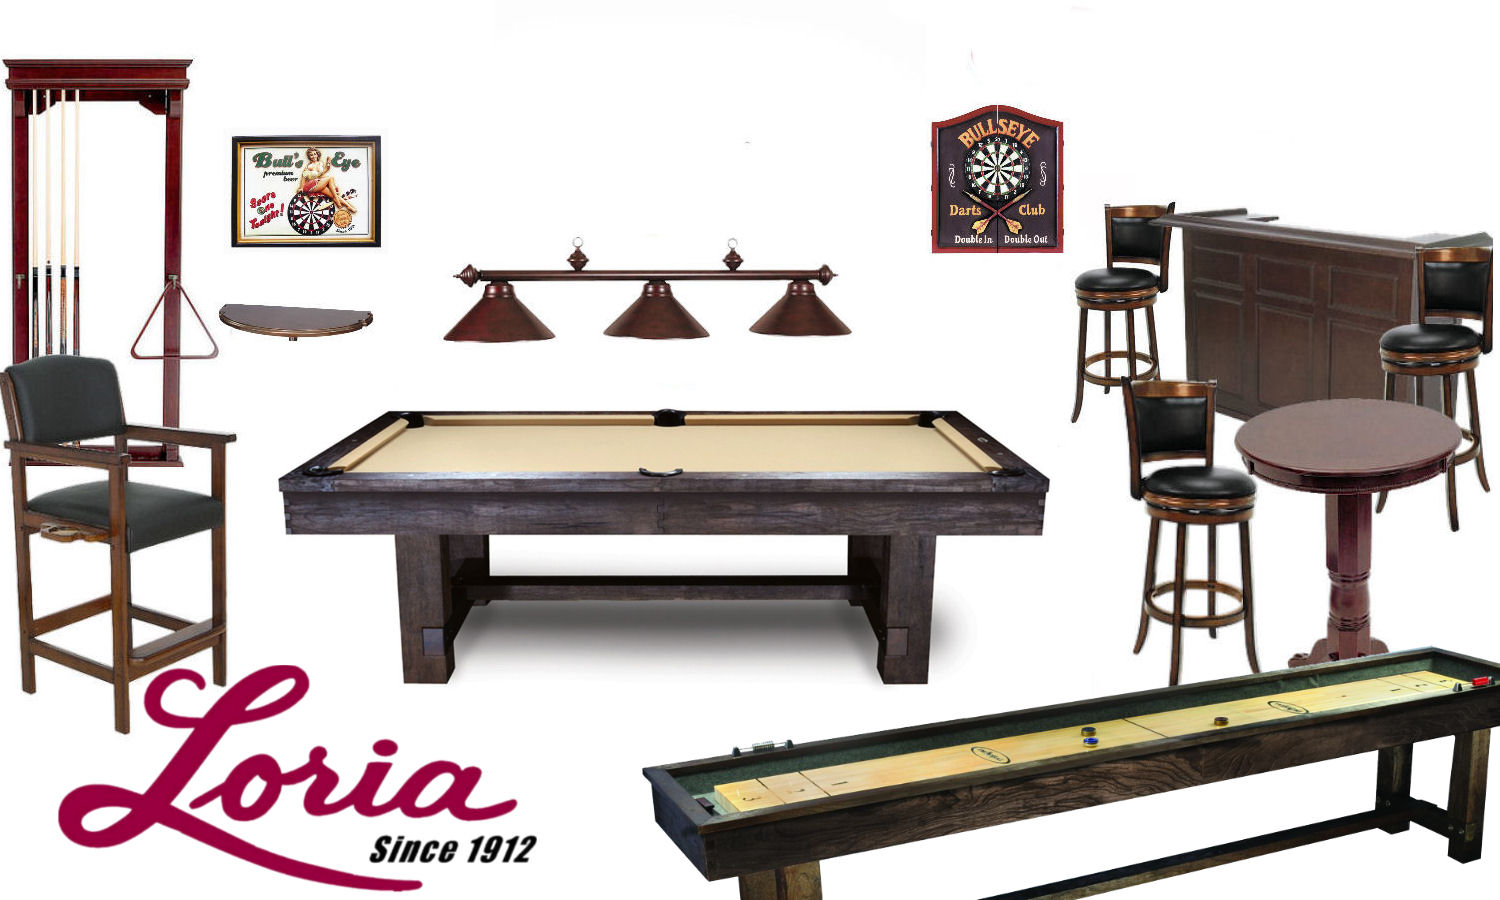 Pool Table Slate Top NewYork New Jersey Connecticut Loria Awards - Reno pool table